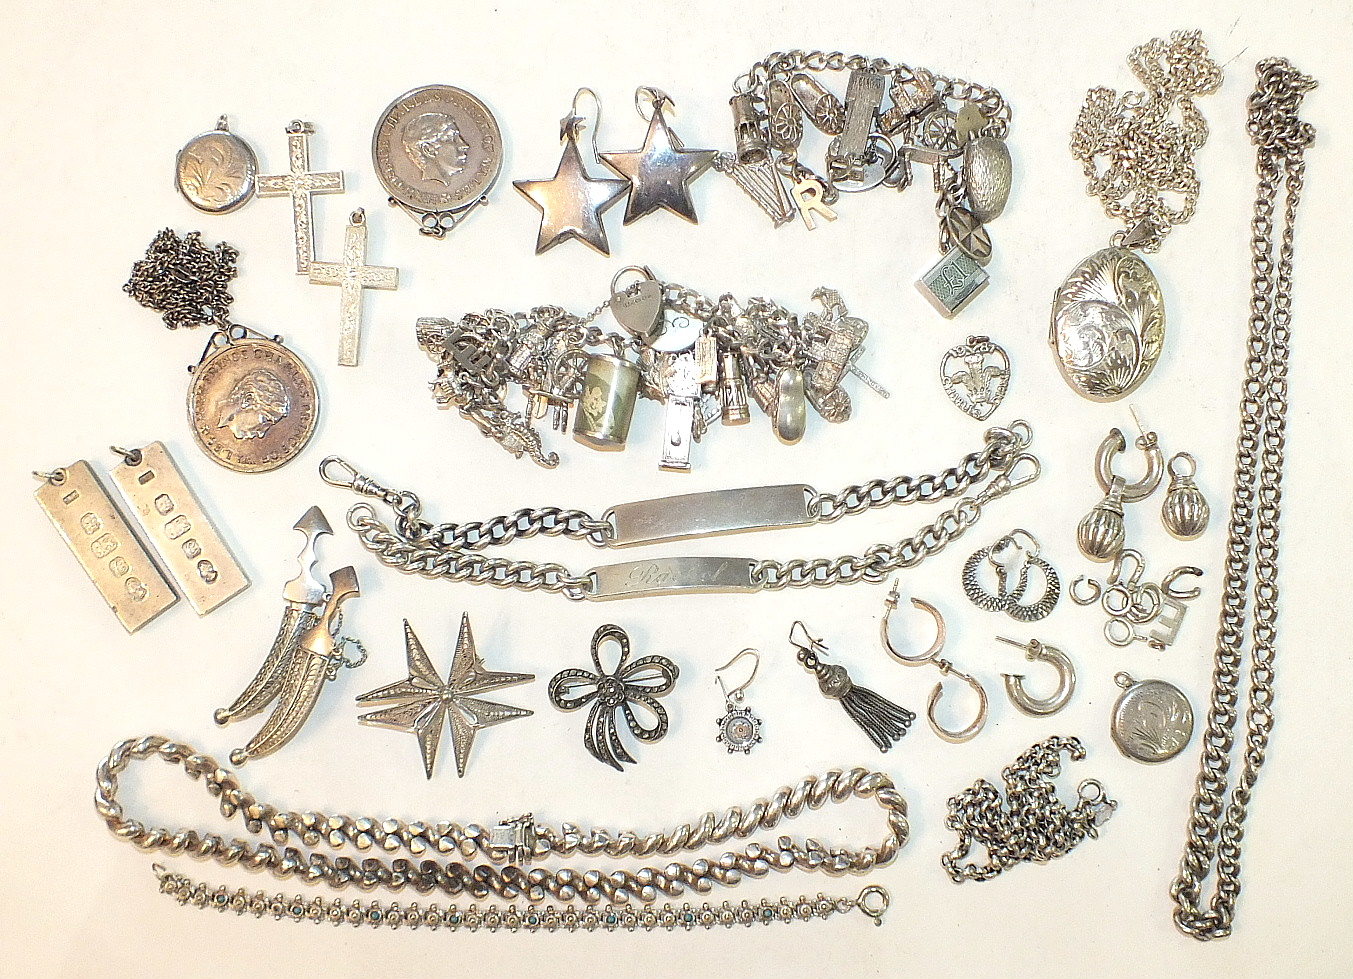 Lot 303 - Two silver charm bracelets, a silver rope-twist necklace and other silver jewellery, ___15oz